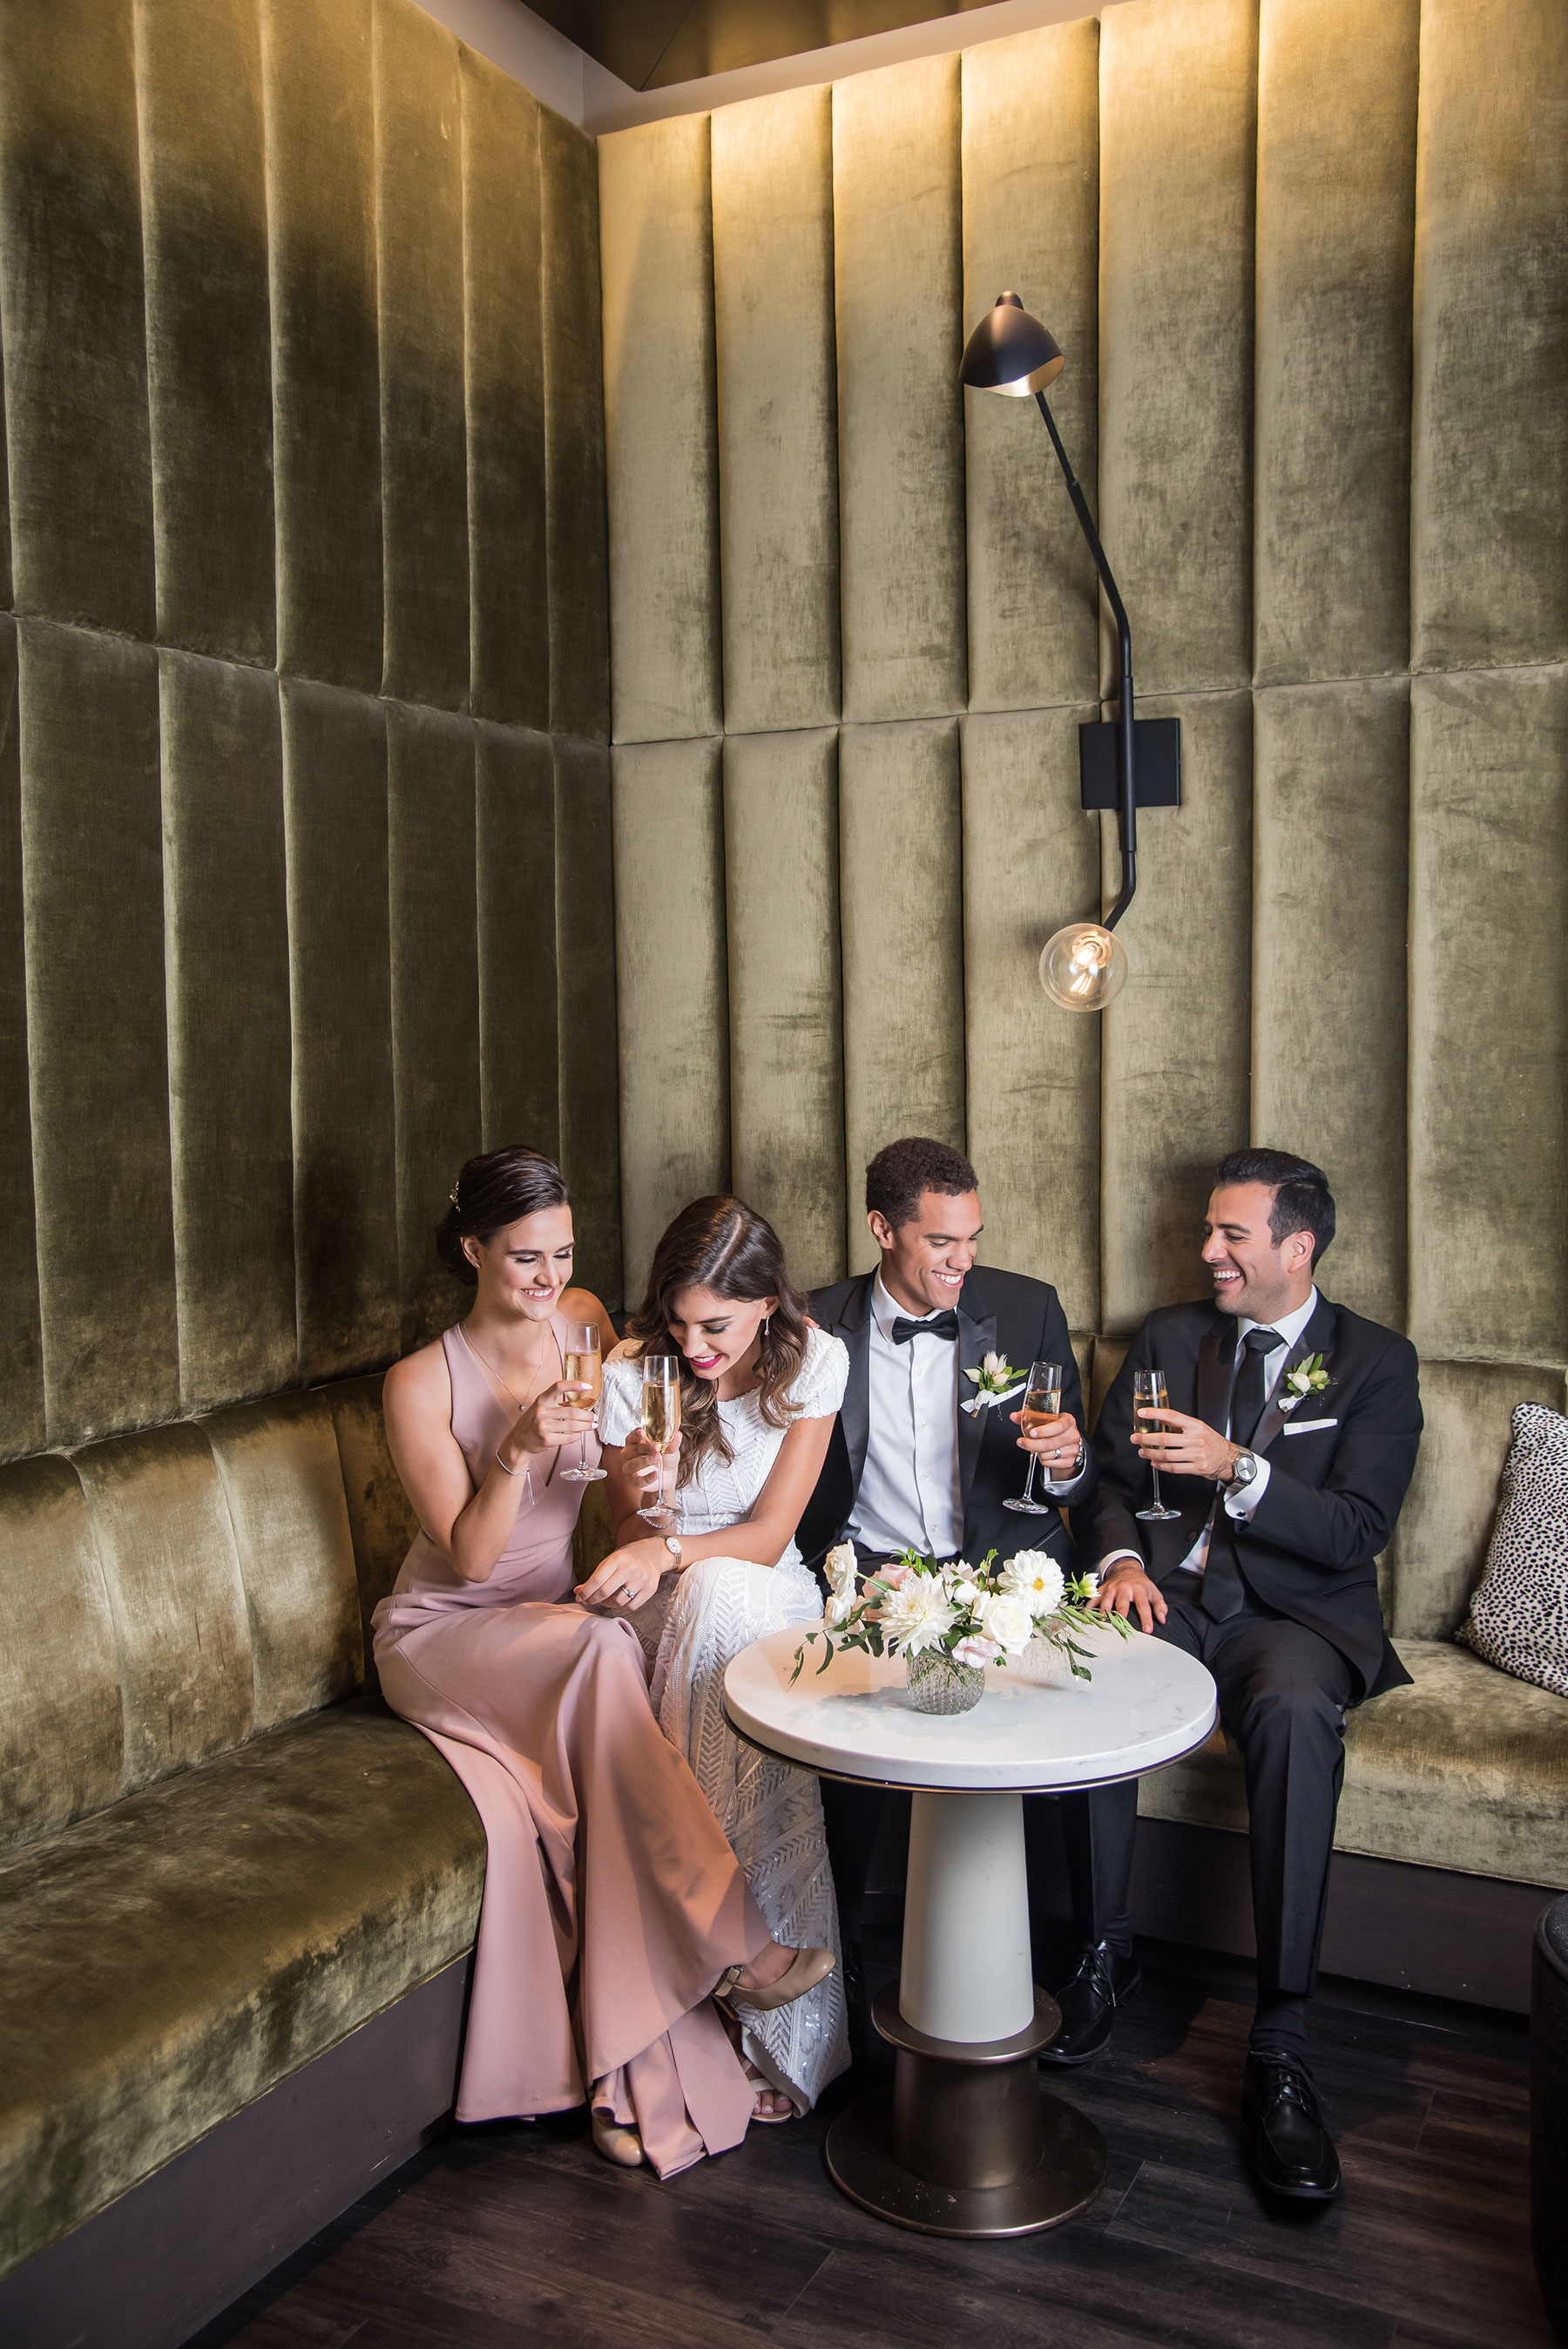 Timeless Gift Giving In The Perfect Intimate Rooftop Wedding Setting